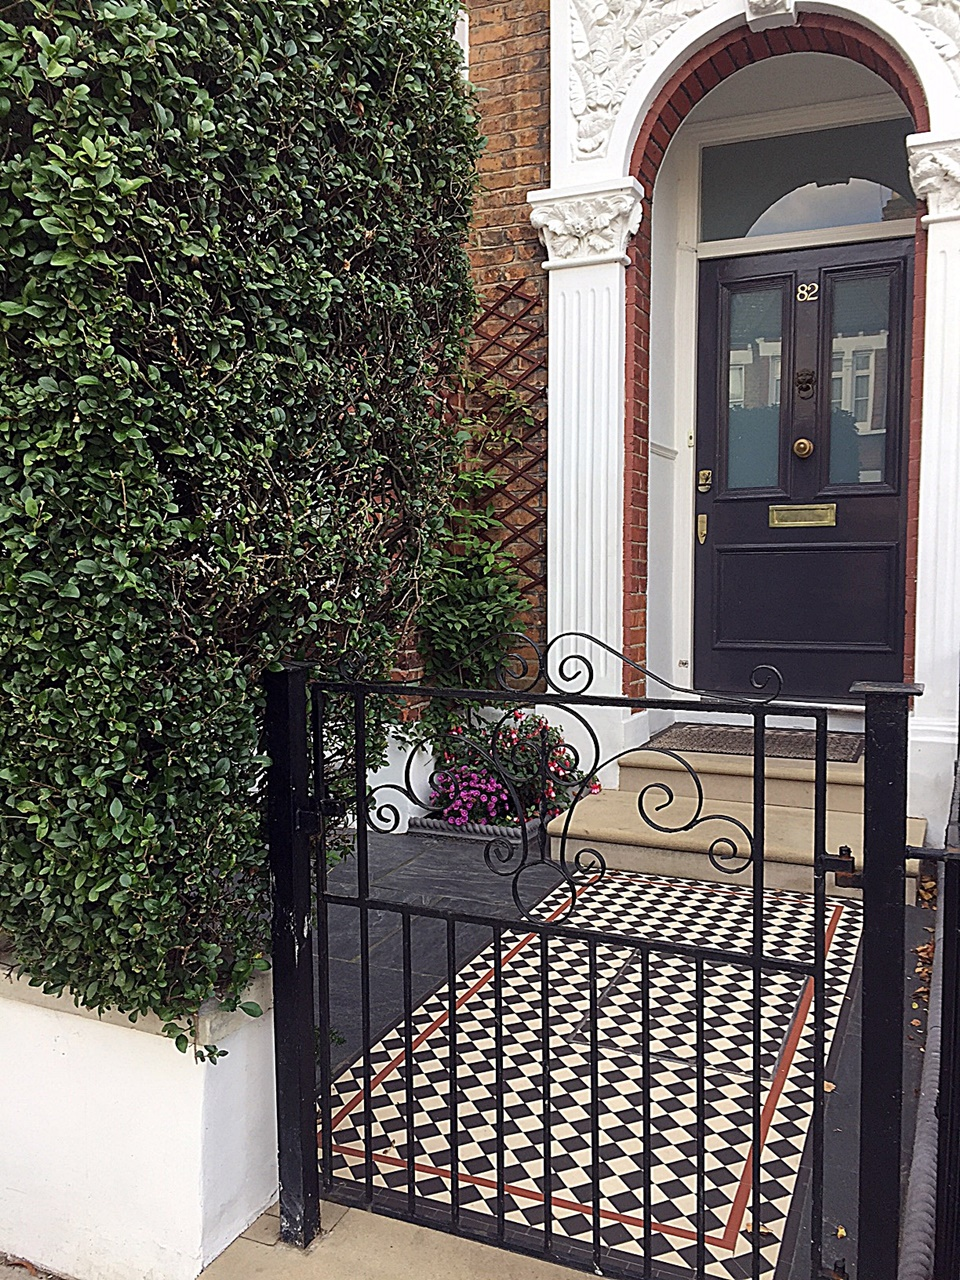 multi-colour-victorian-mosaic-metal-rails-gate-paving-path-tile-low-maintenance-london-balham-clapham-wandsworth